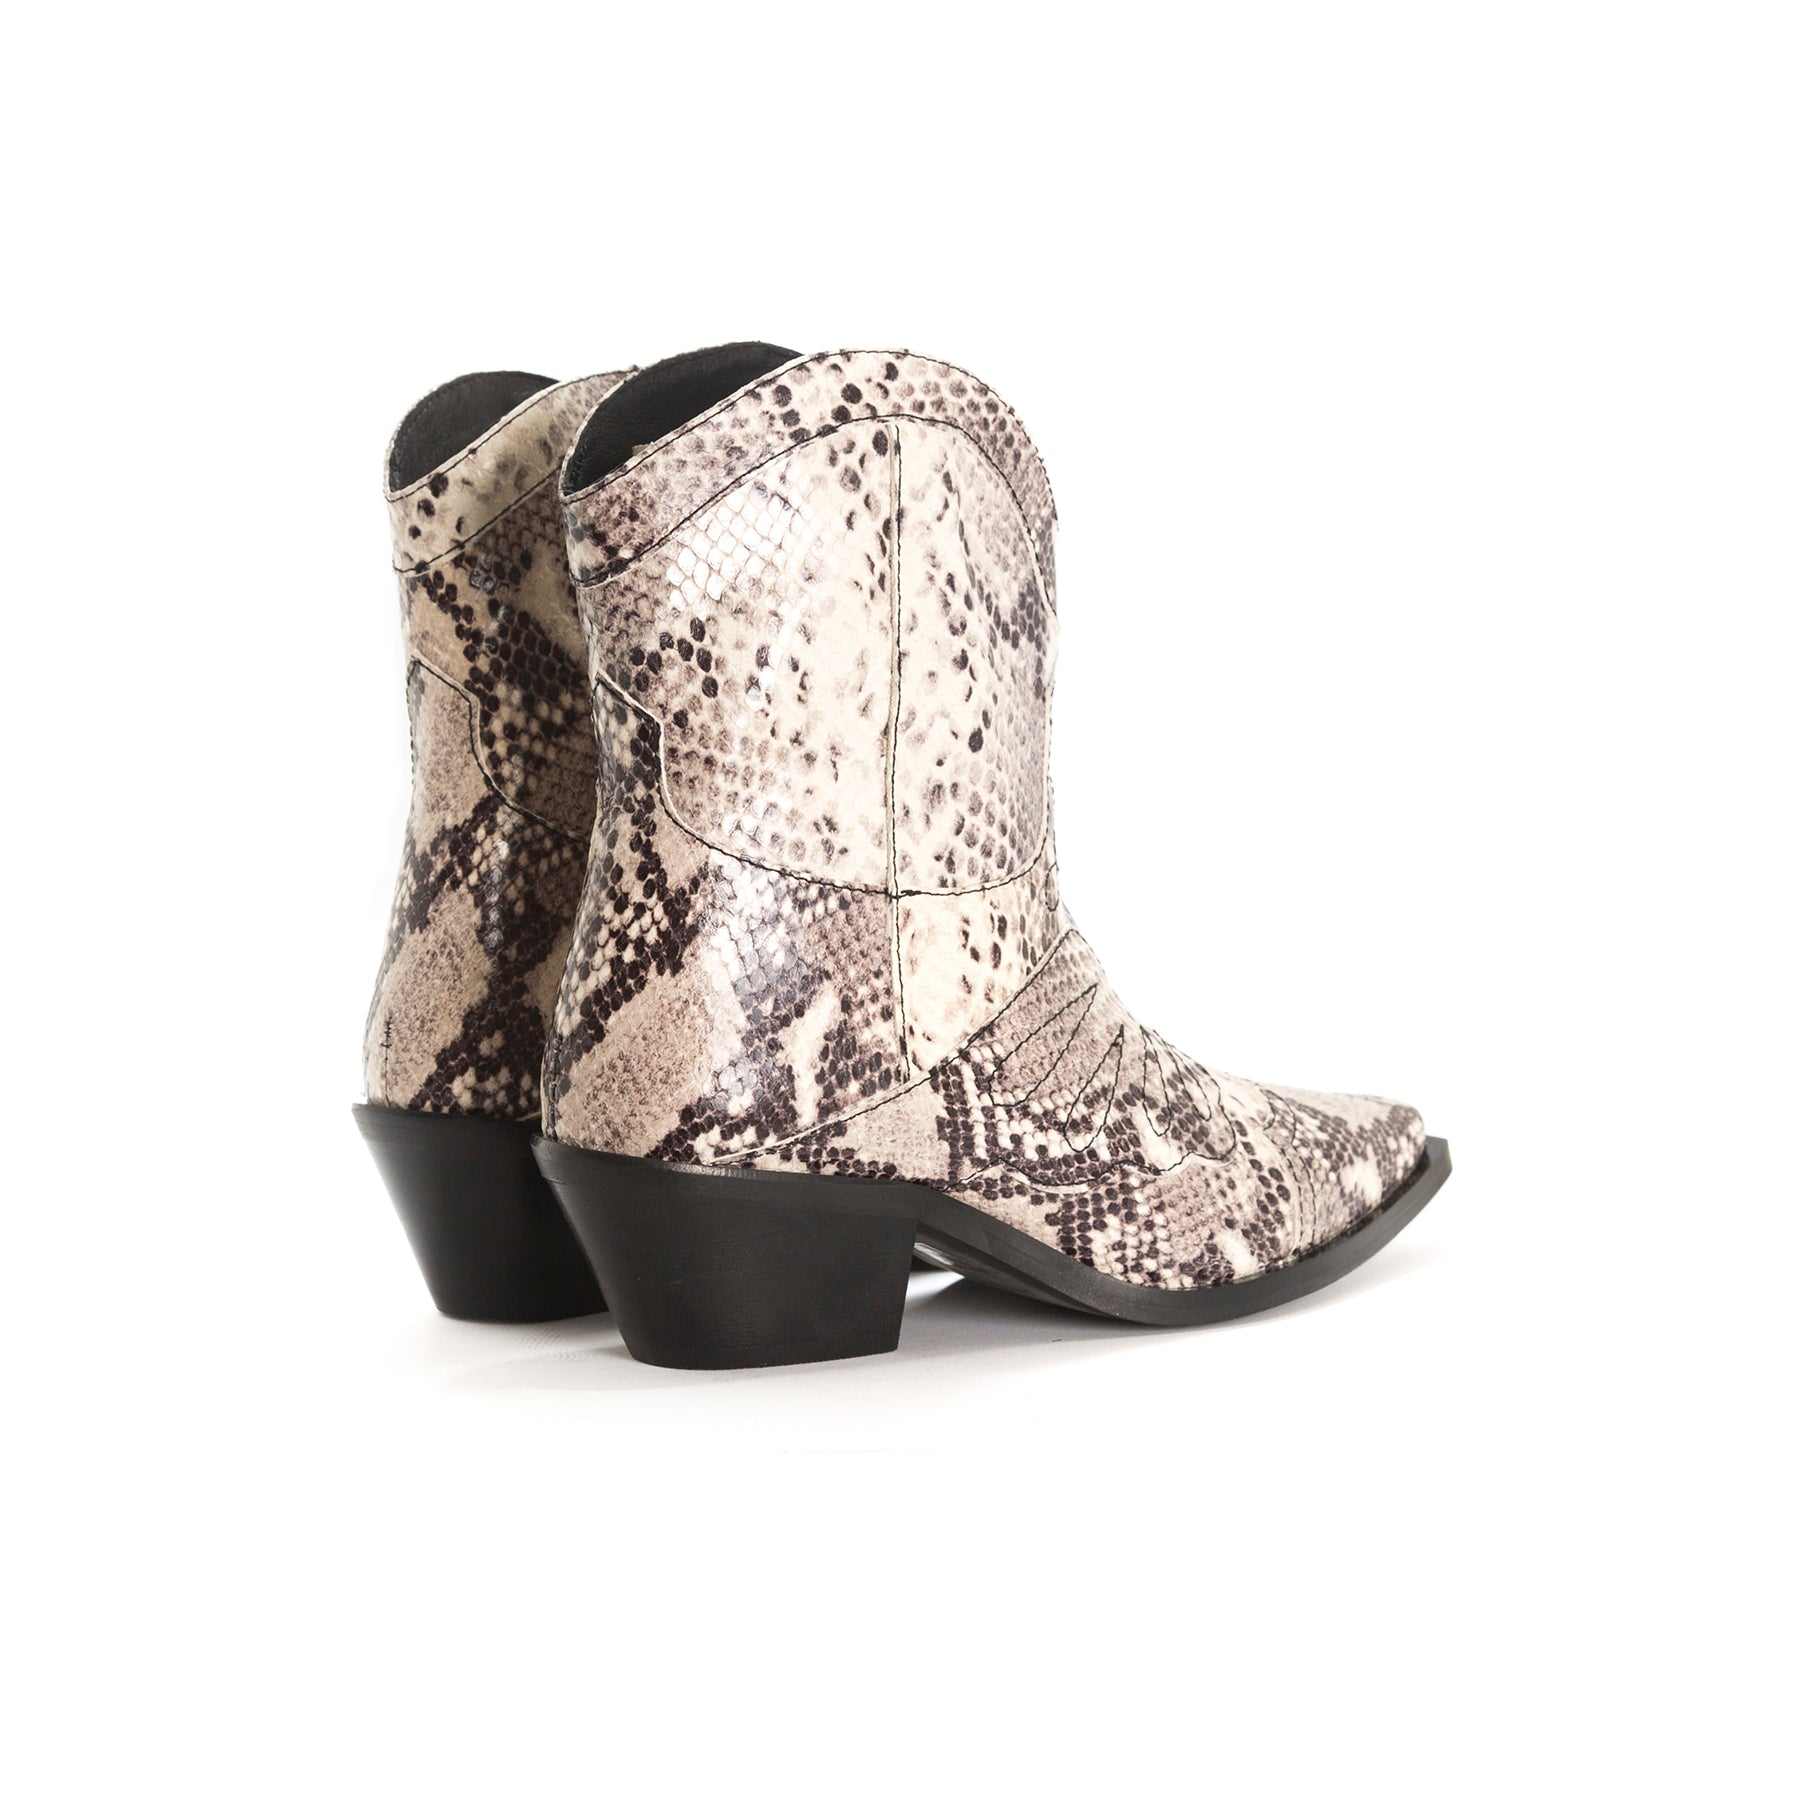 Maryland Natural Snake Leather Ankle Boots